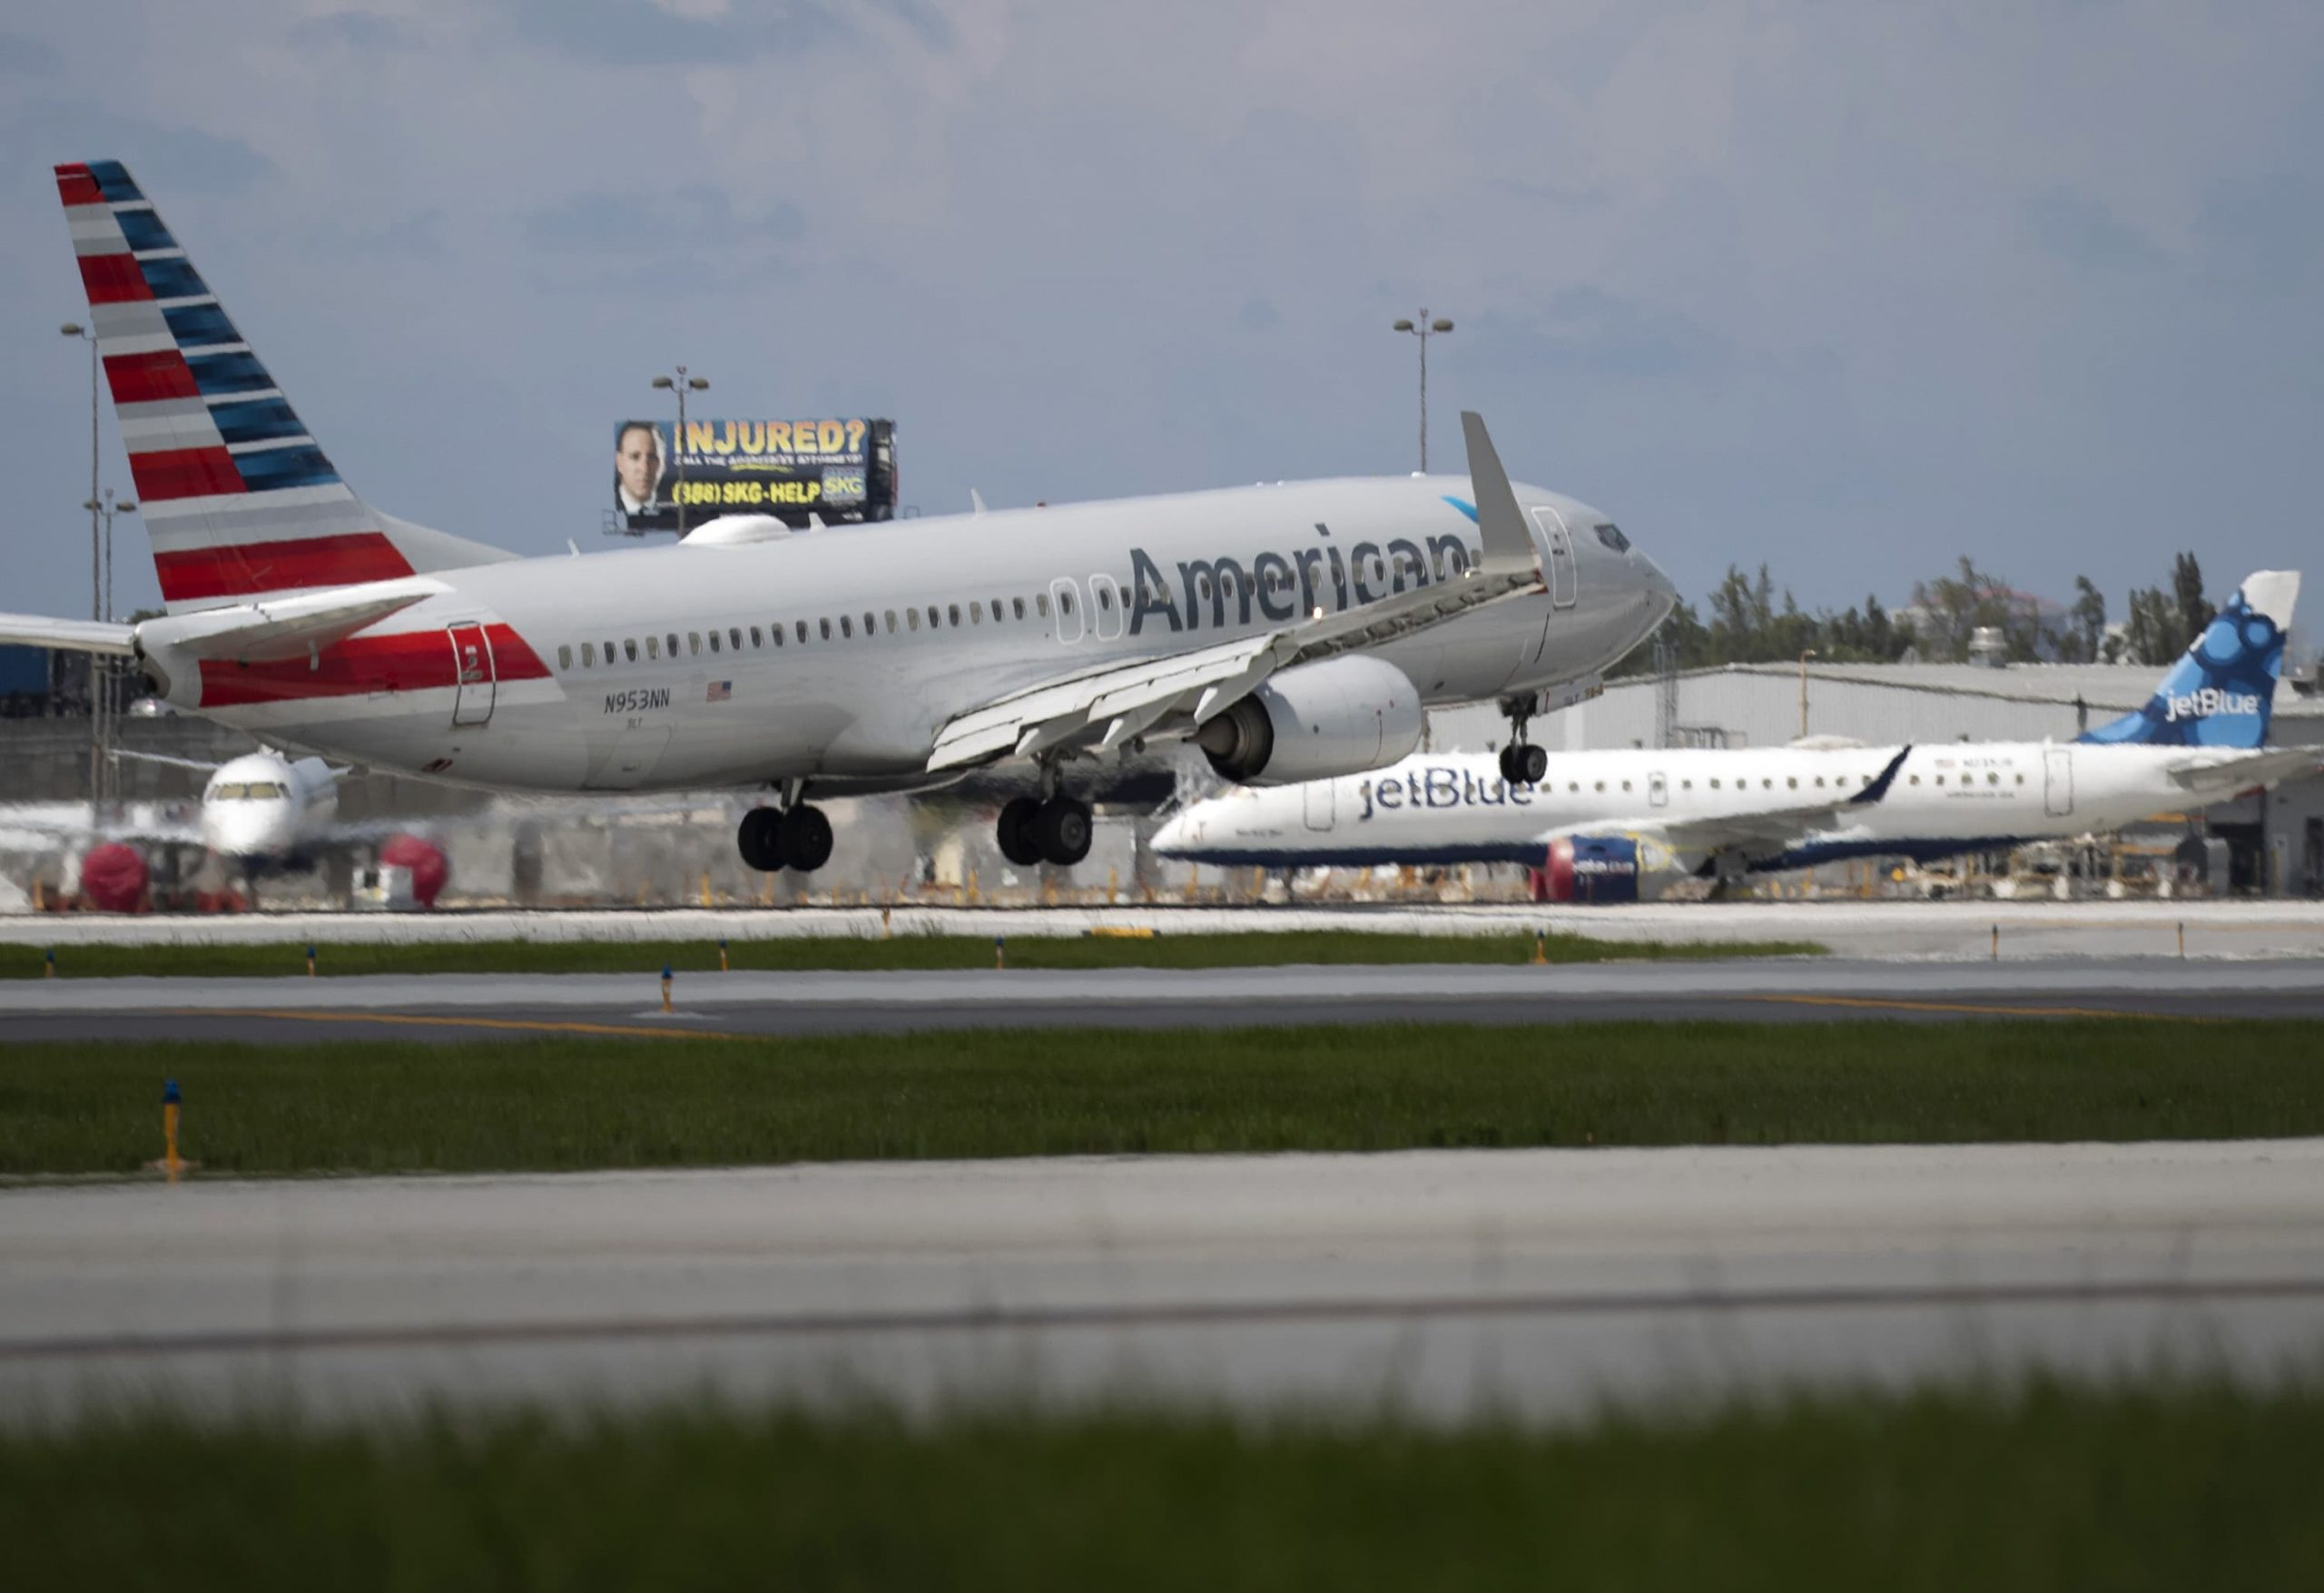 JetBlue revamps website to avoid confusion with new partner American Airlines